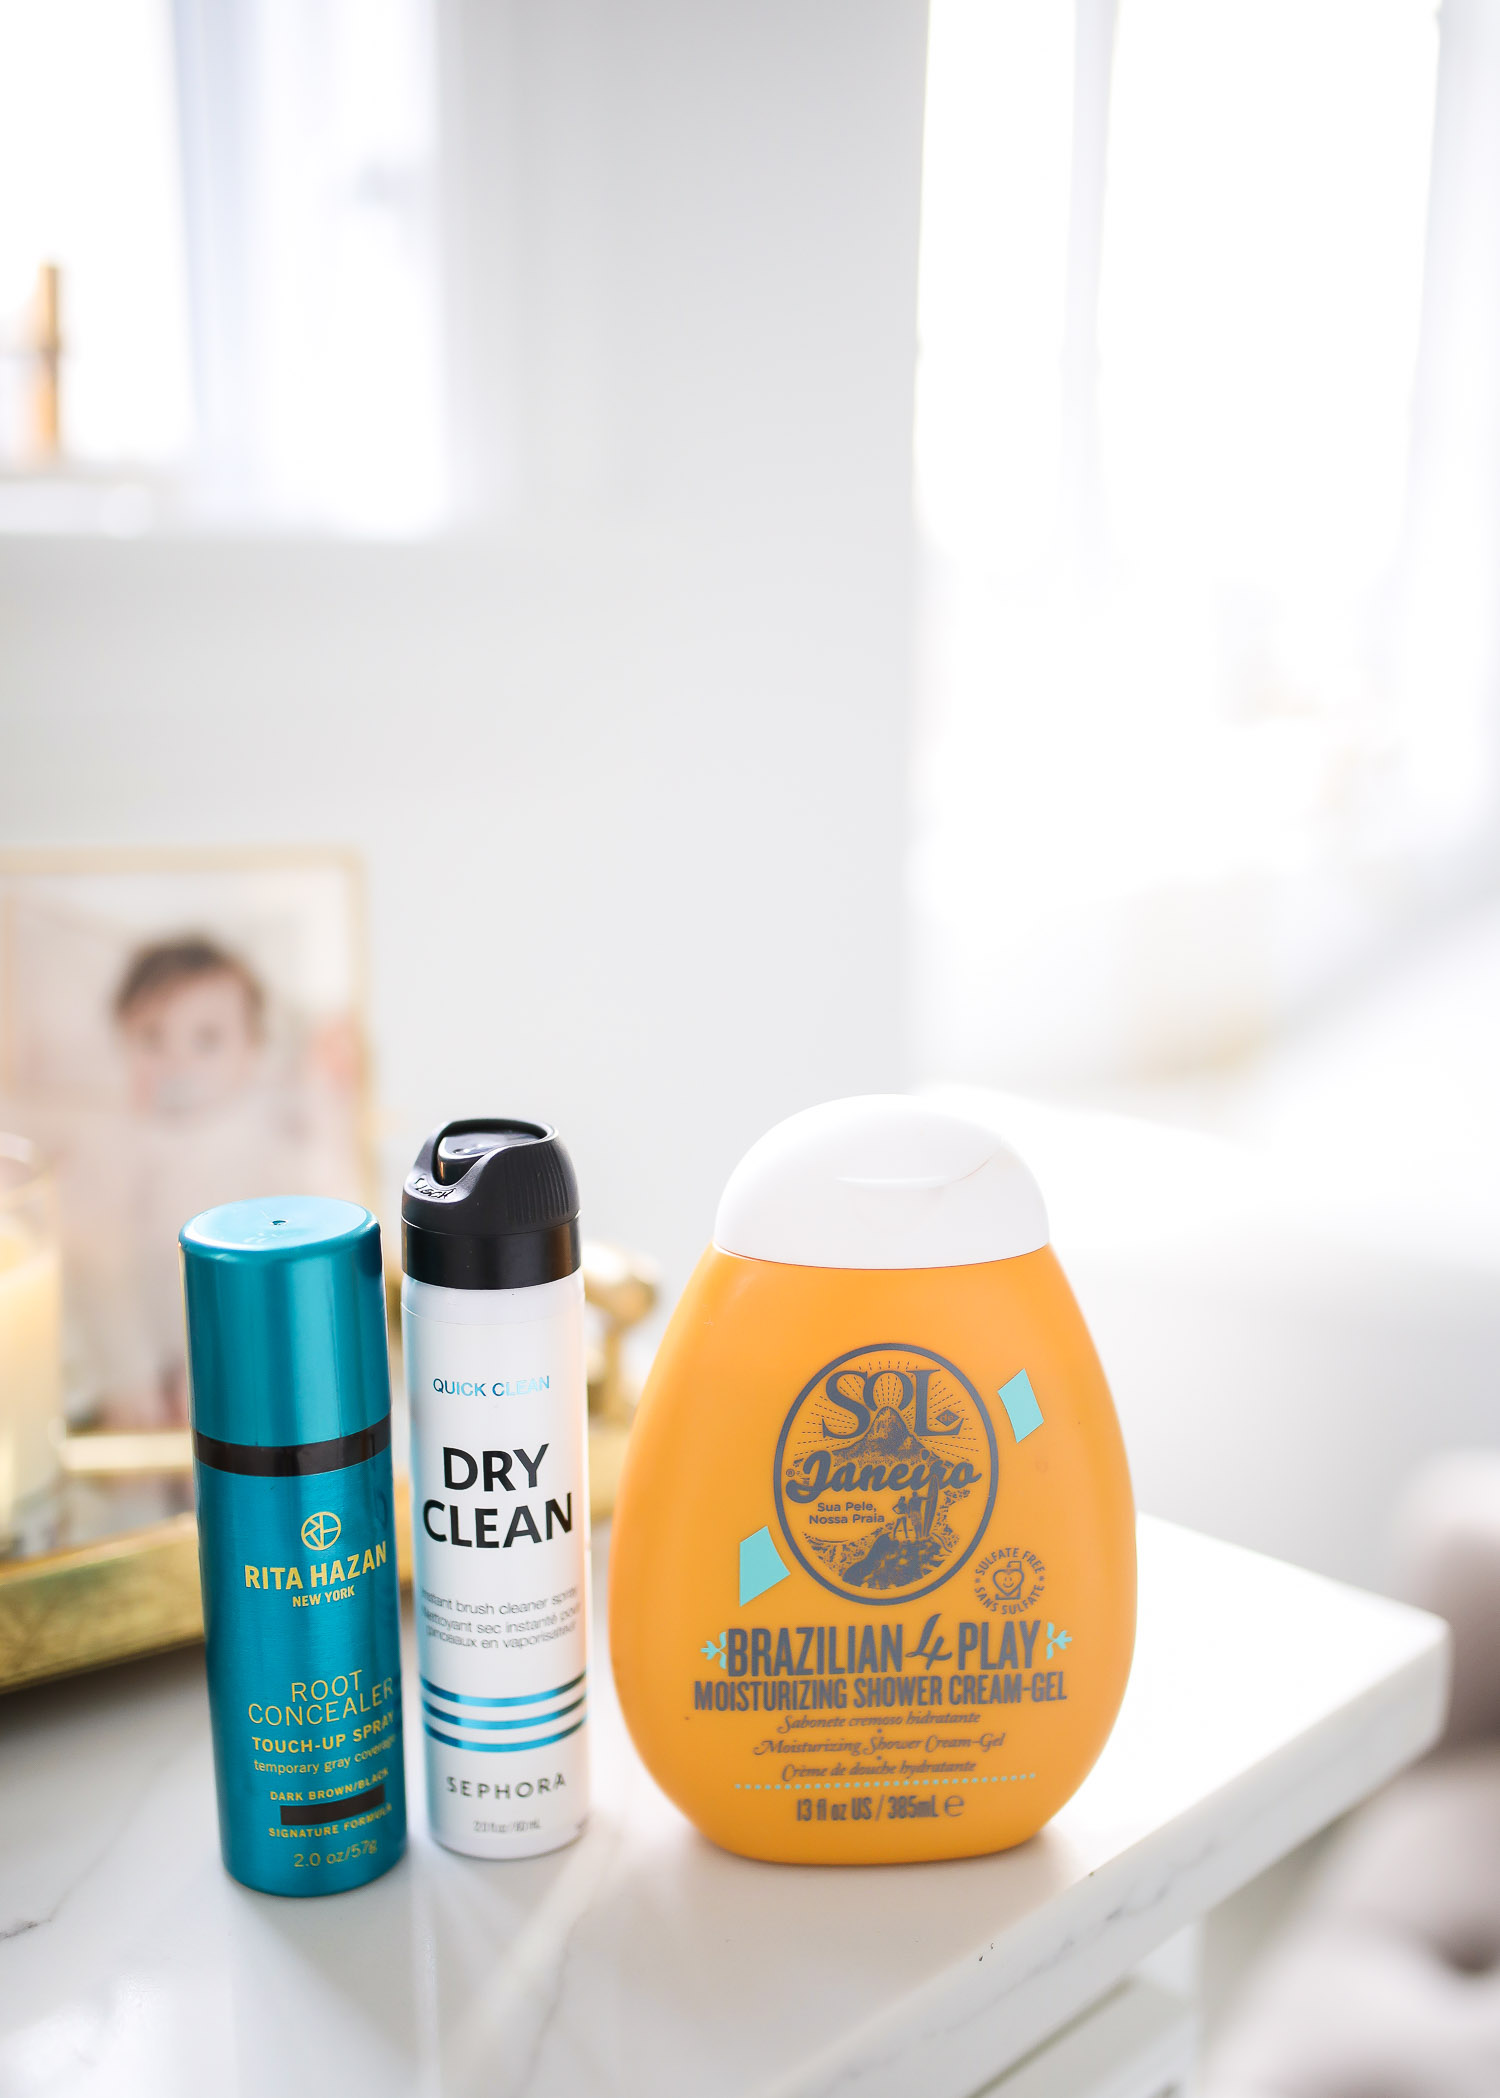 Sephora Favorites by popular US beauty blog, The Sweetest Thing: image of Rita Hazan foot concentrate, Sephora Dry Clean, and Brazilian 4 Play moisturizing shower cream gel.